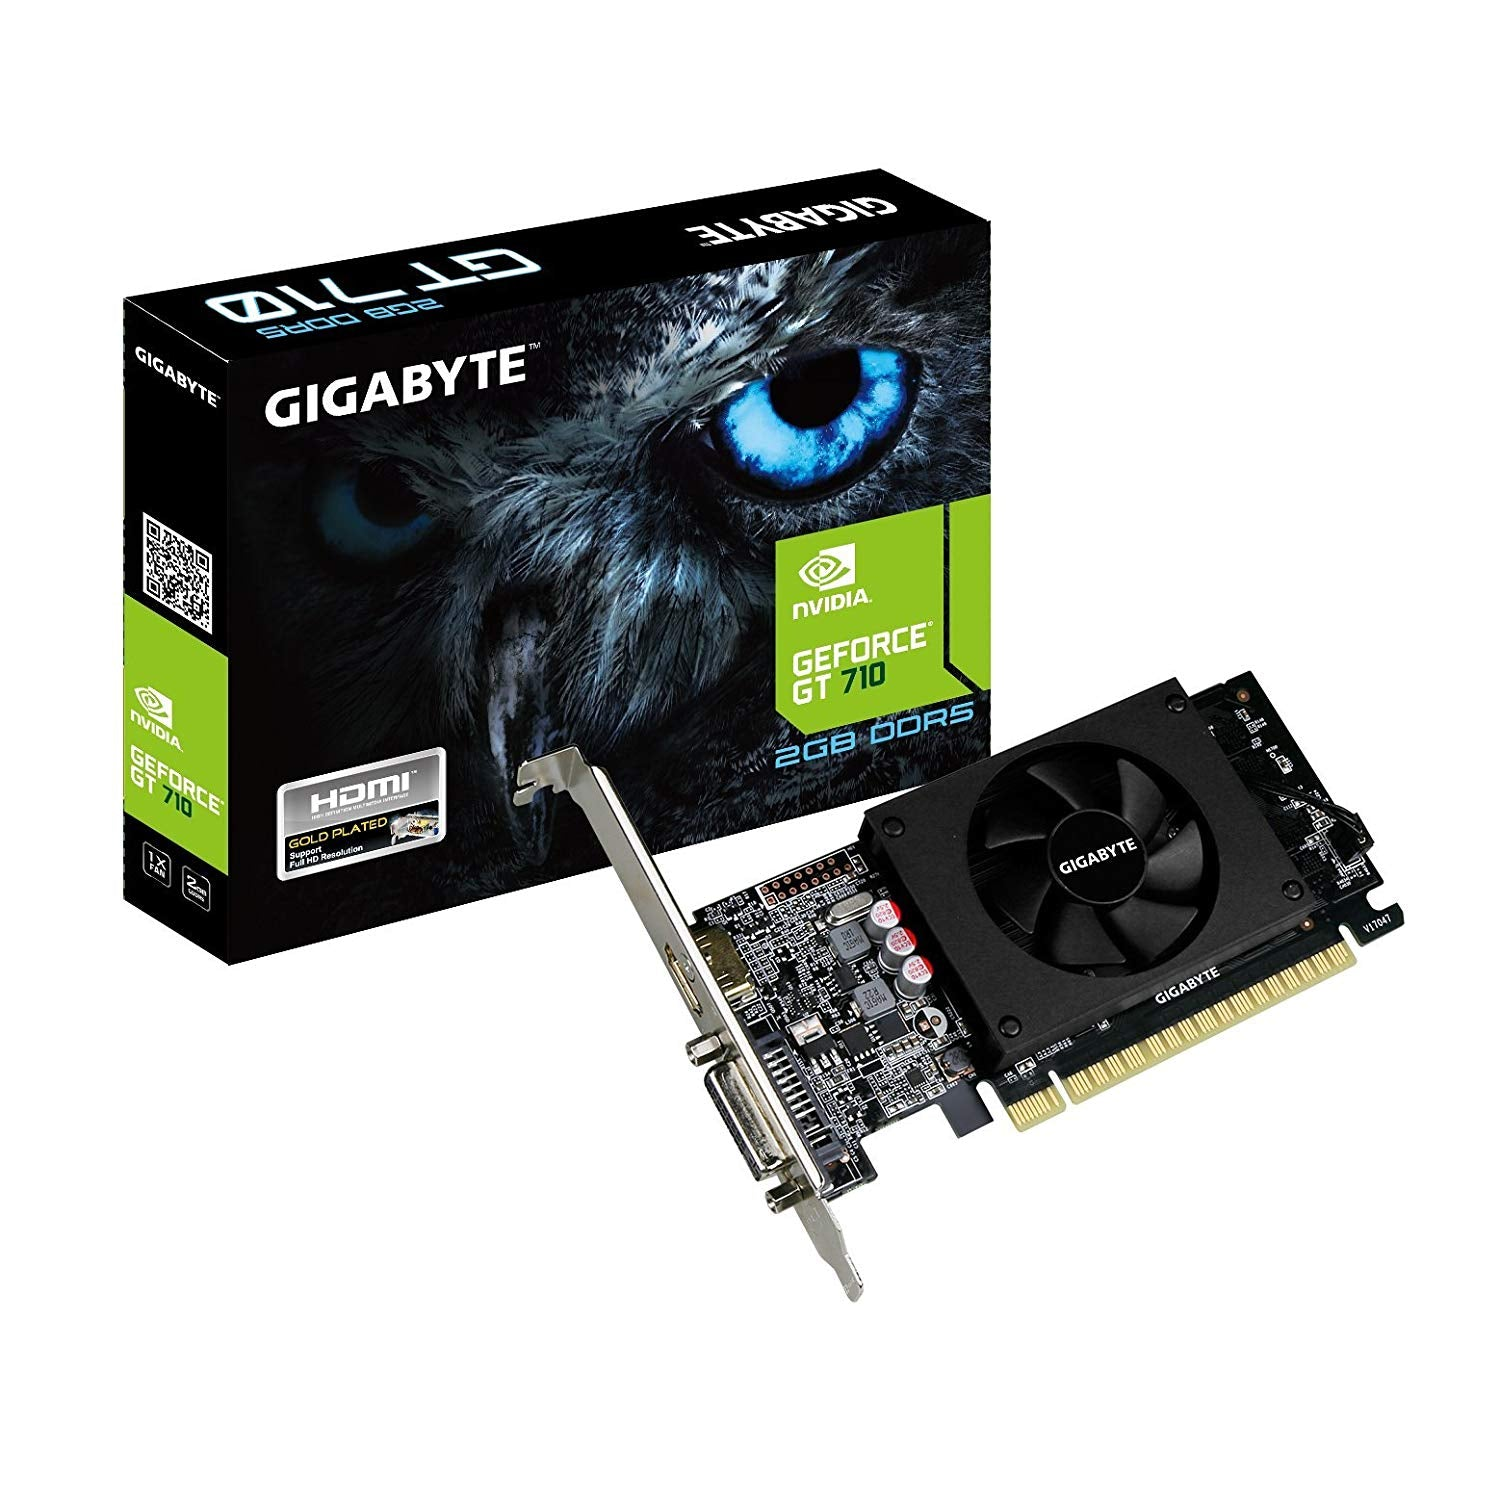 Gigabyte GeForce GT 710 2GB Graphic Card GV-N710D5-2GL ddr5